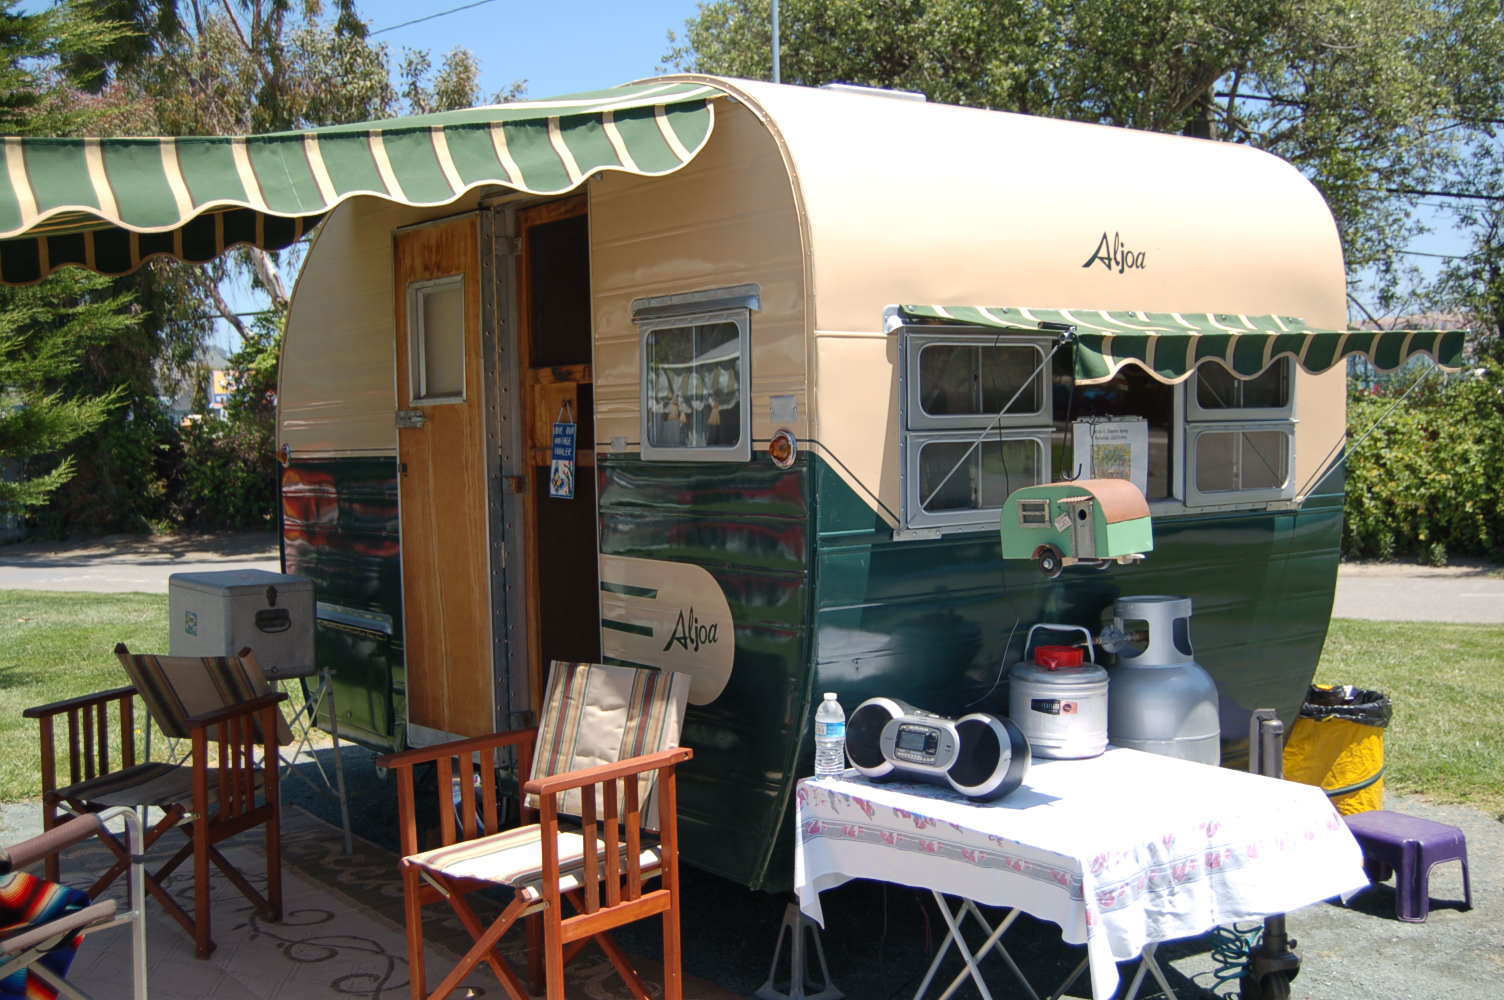 Vintage Aljoa Trailer Pictures and History, from OldTrailer com